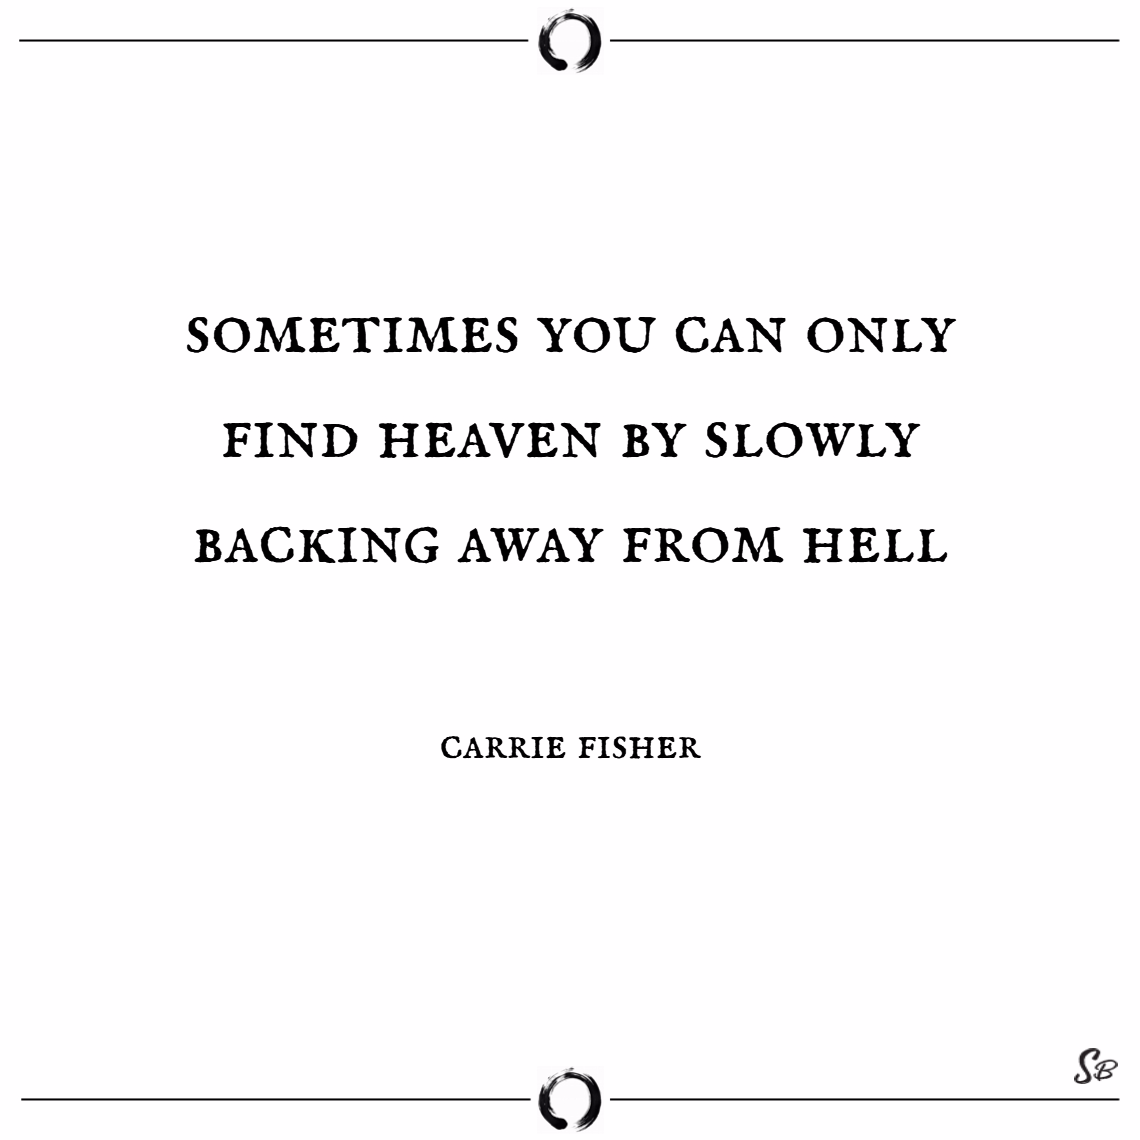 Sometimes you can only find heaven by slowly backing away from hell. – carrie fisher